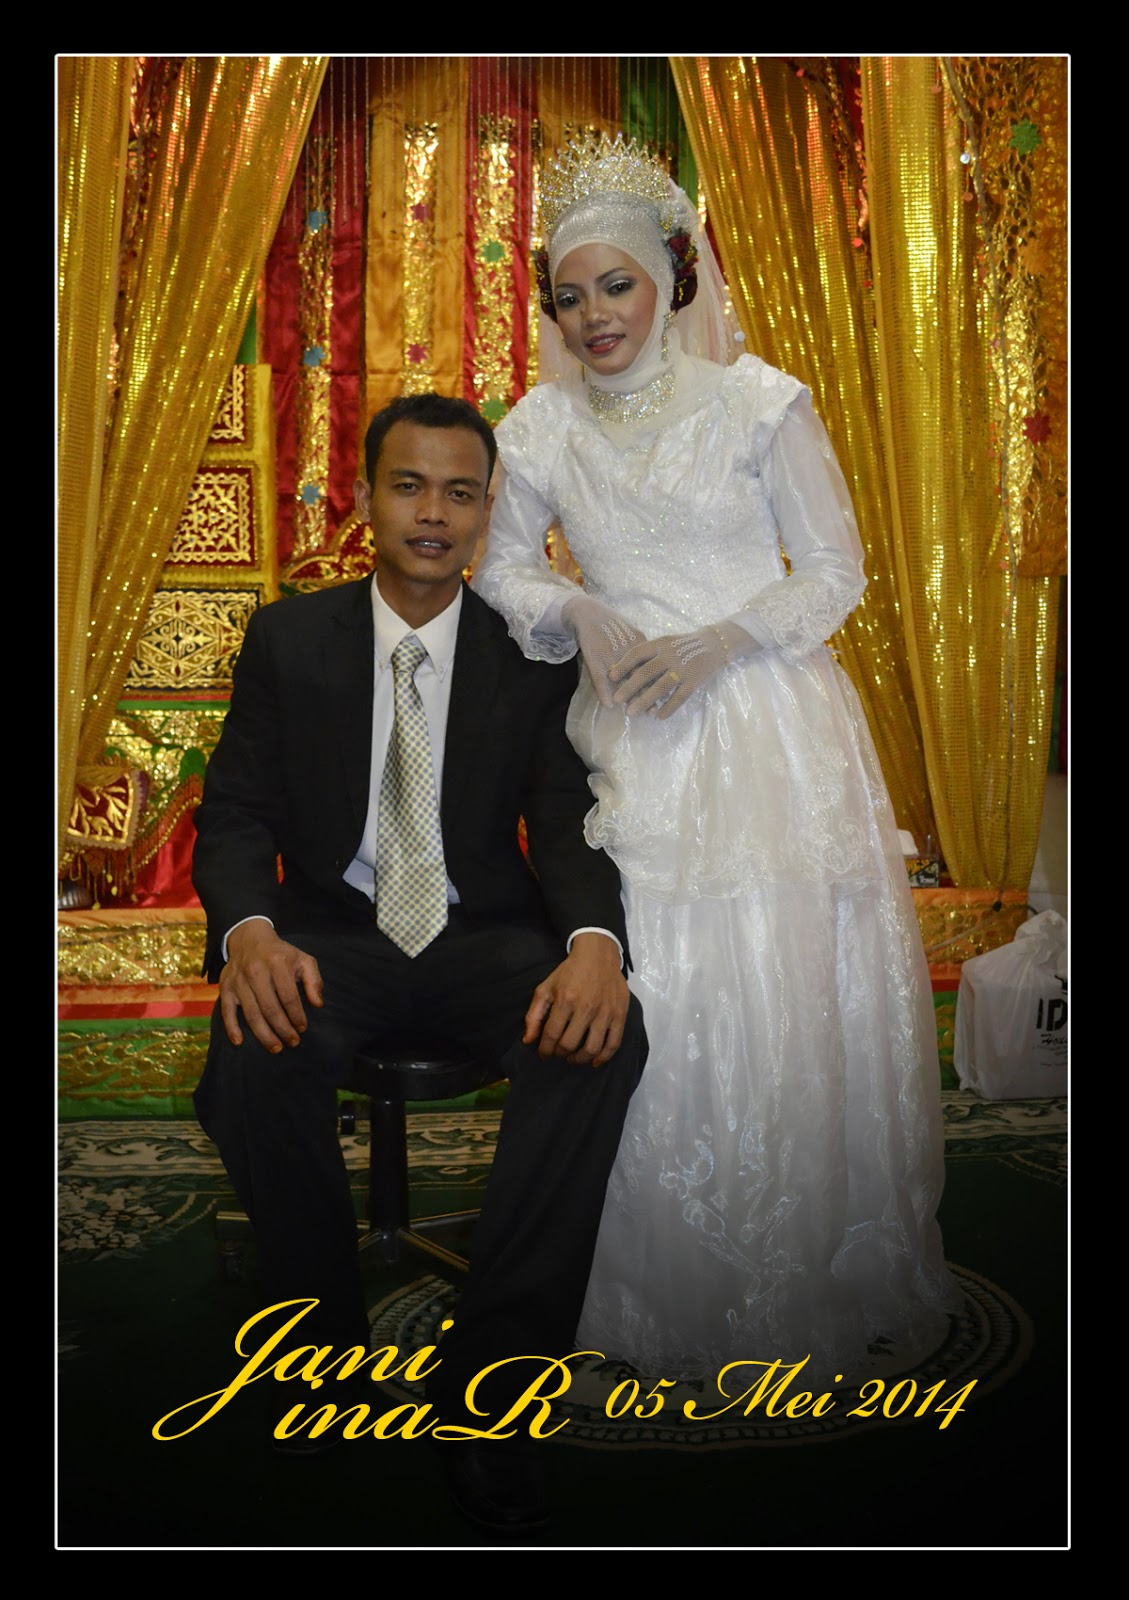 WEDDING 26 APRIL 2014